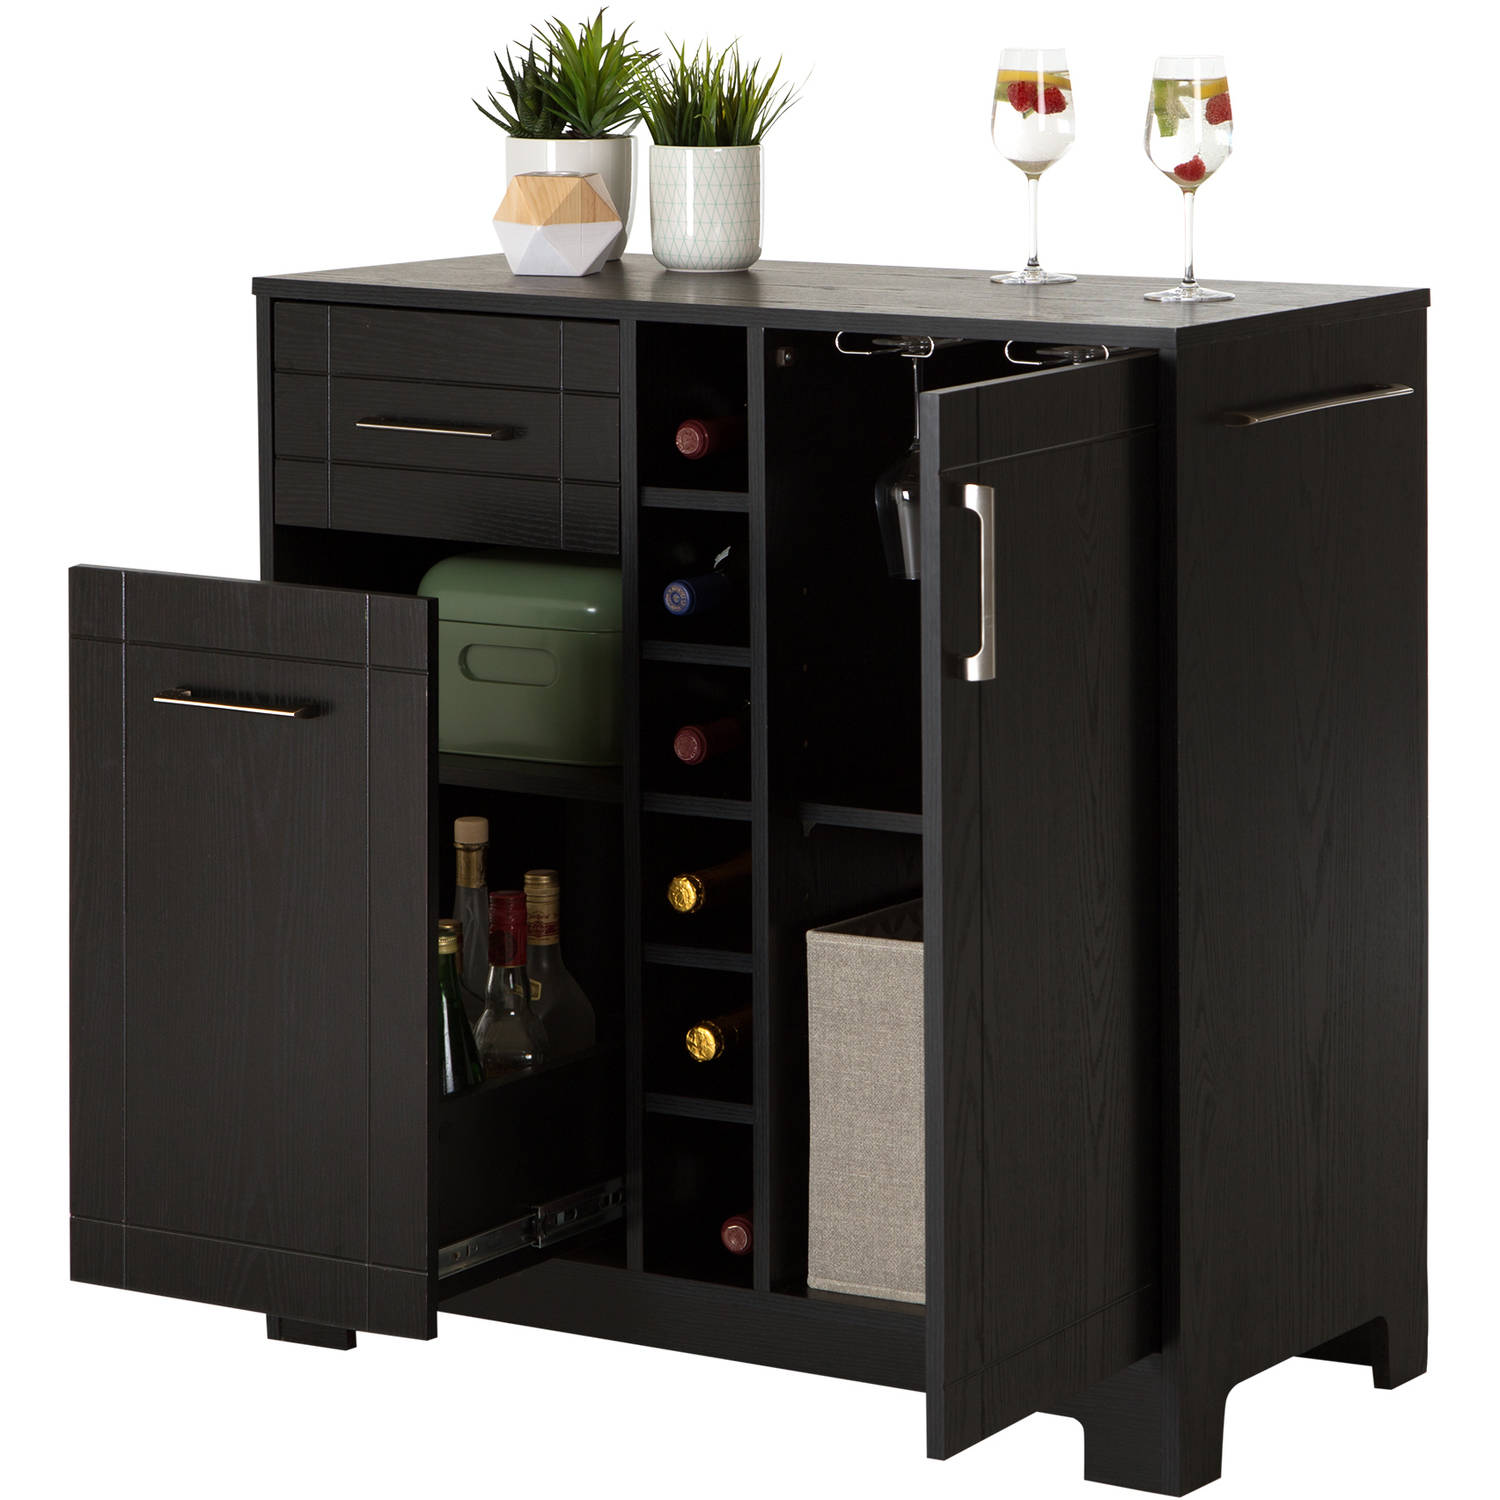 Home Bar Furniture: Home Mini Bar Liquor Cabinet Server Glass Storage Wine